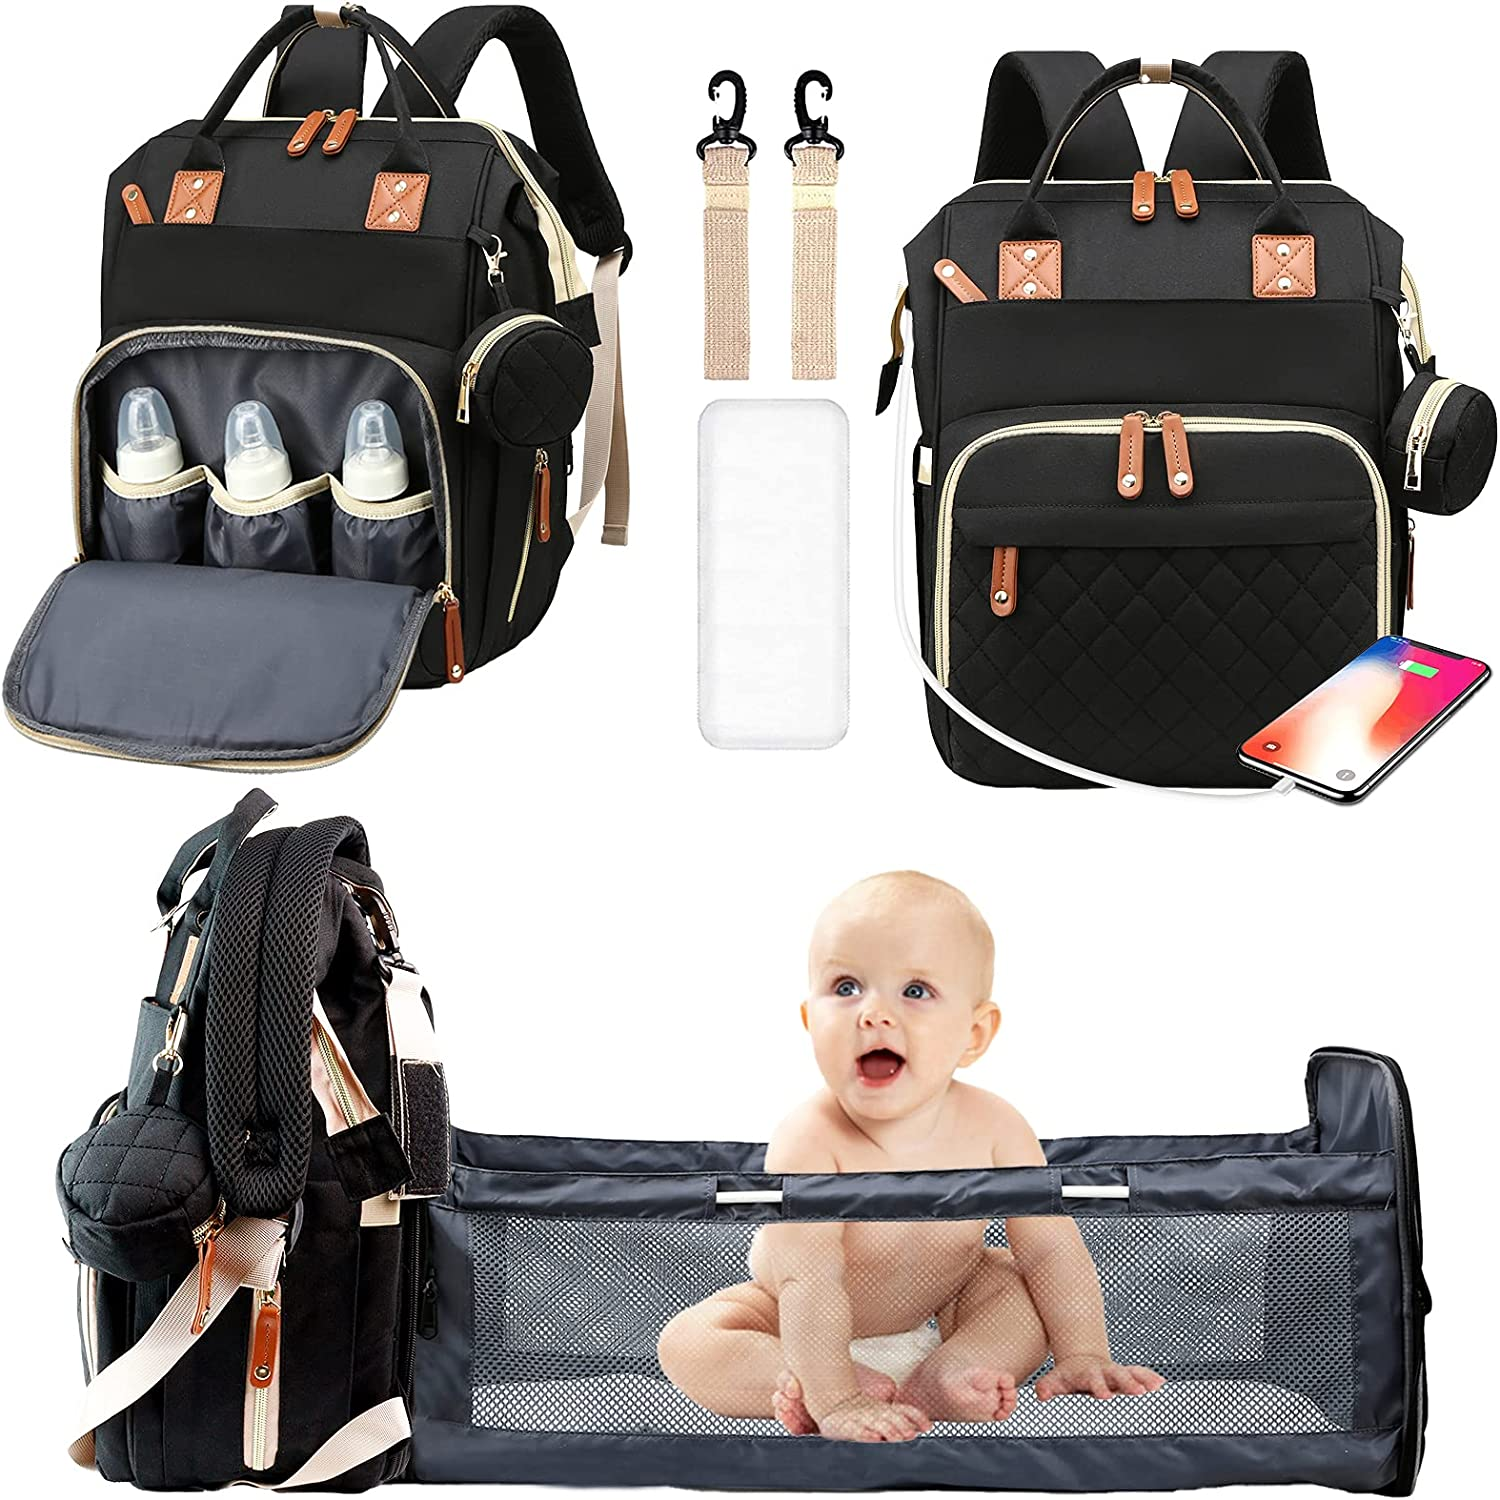 Diaper Bags With Changing Station Large Capacity Travel Baby Bags Backpack For Dad Mom Multifunction Foldable Nappy Bags with Crib/Pacifier Case/USB Charging Port/Insulated Pockets/Waterproof